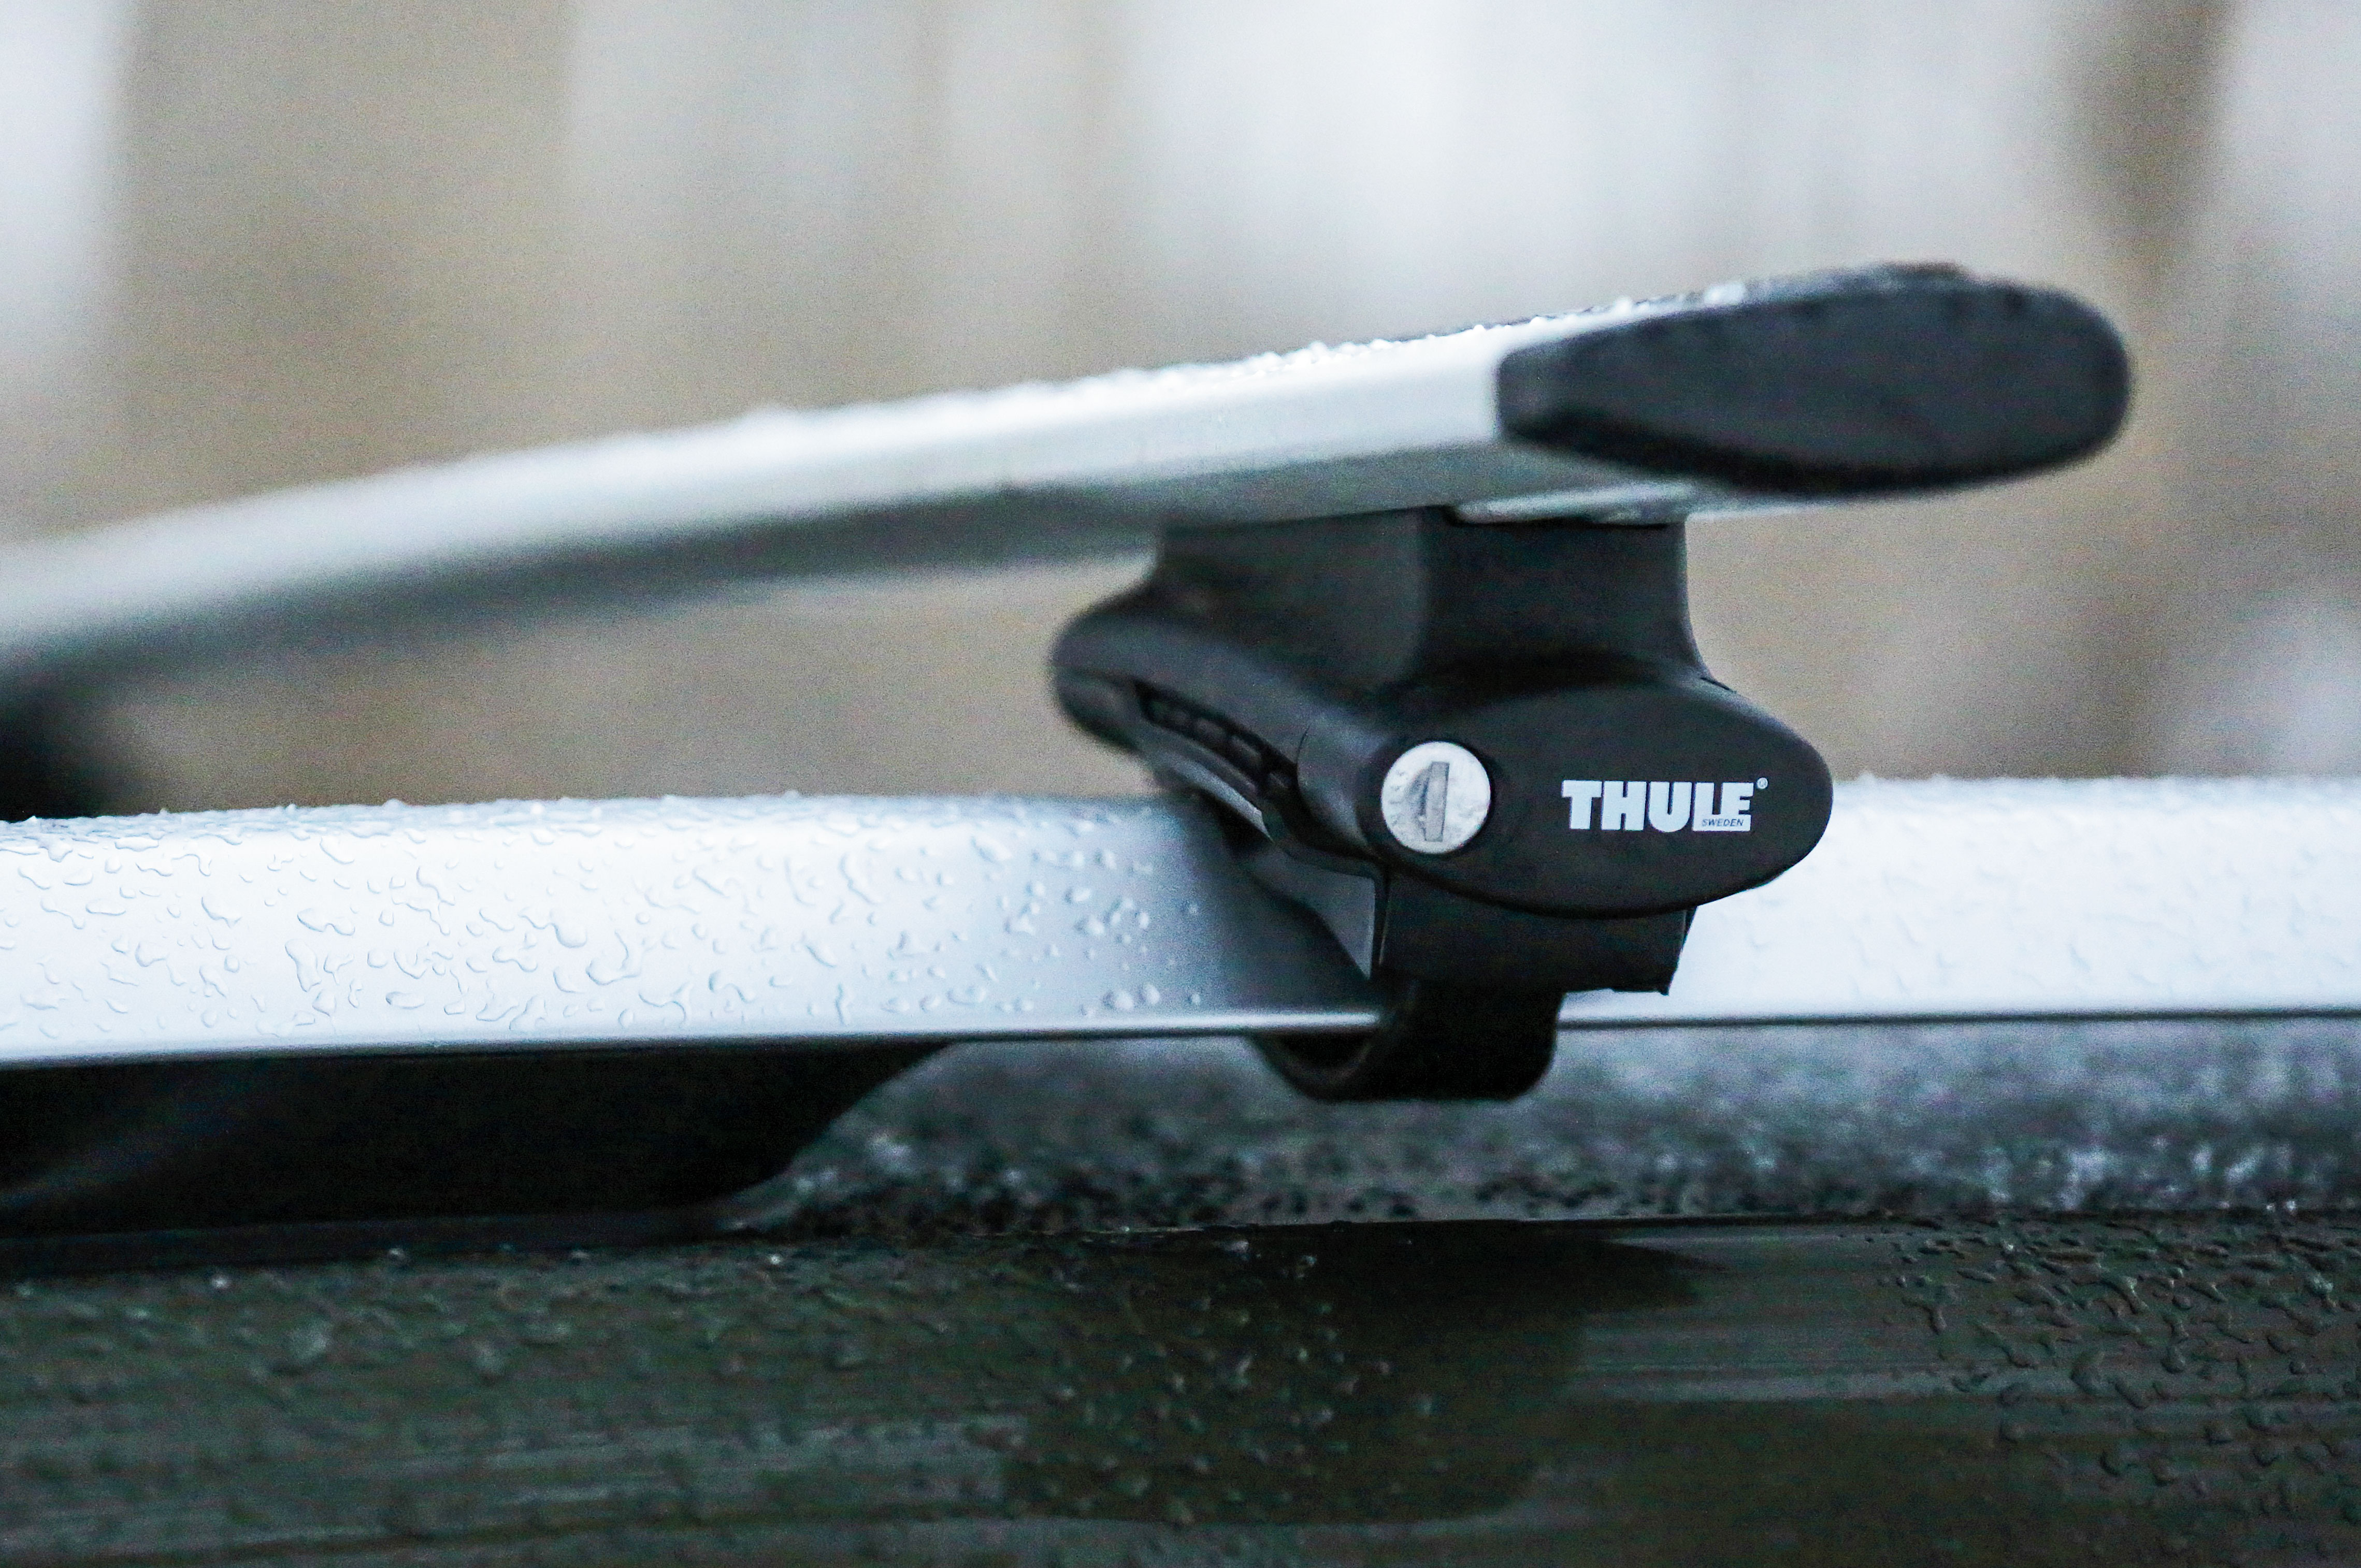 Get Mopar's Thule roof rack for functionality, not aesthetics.